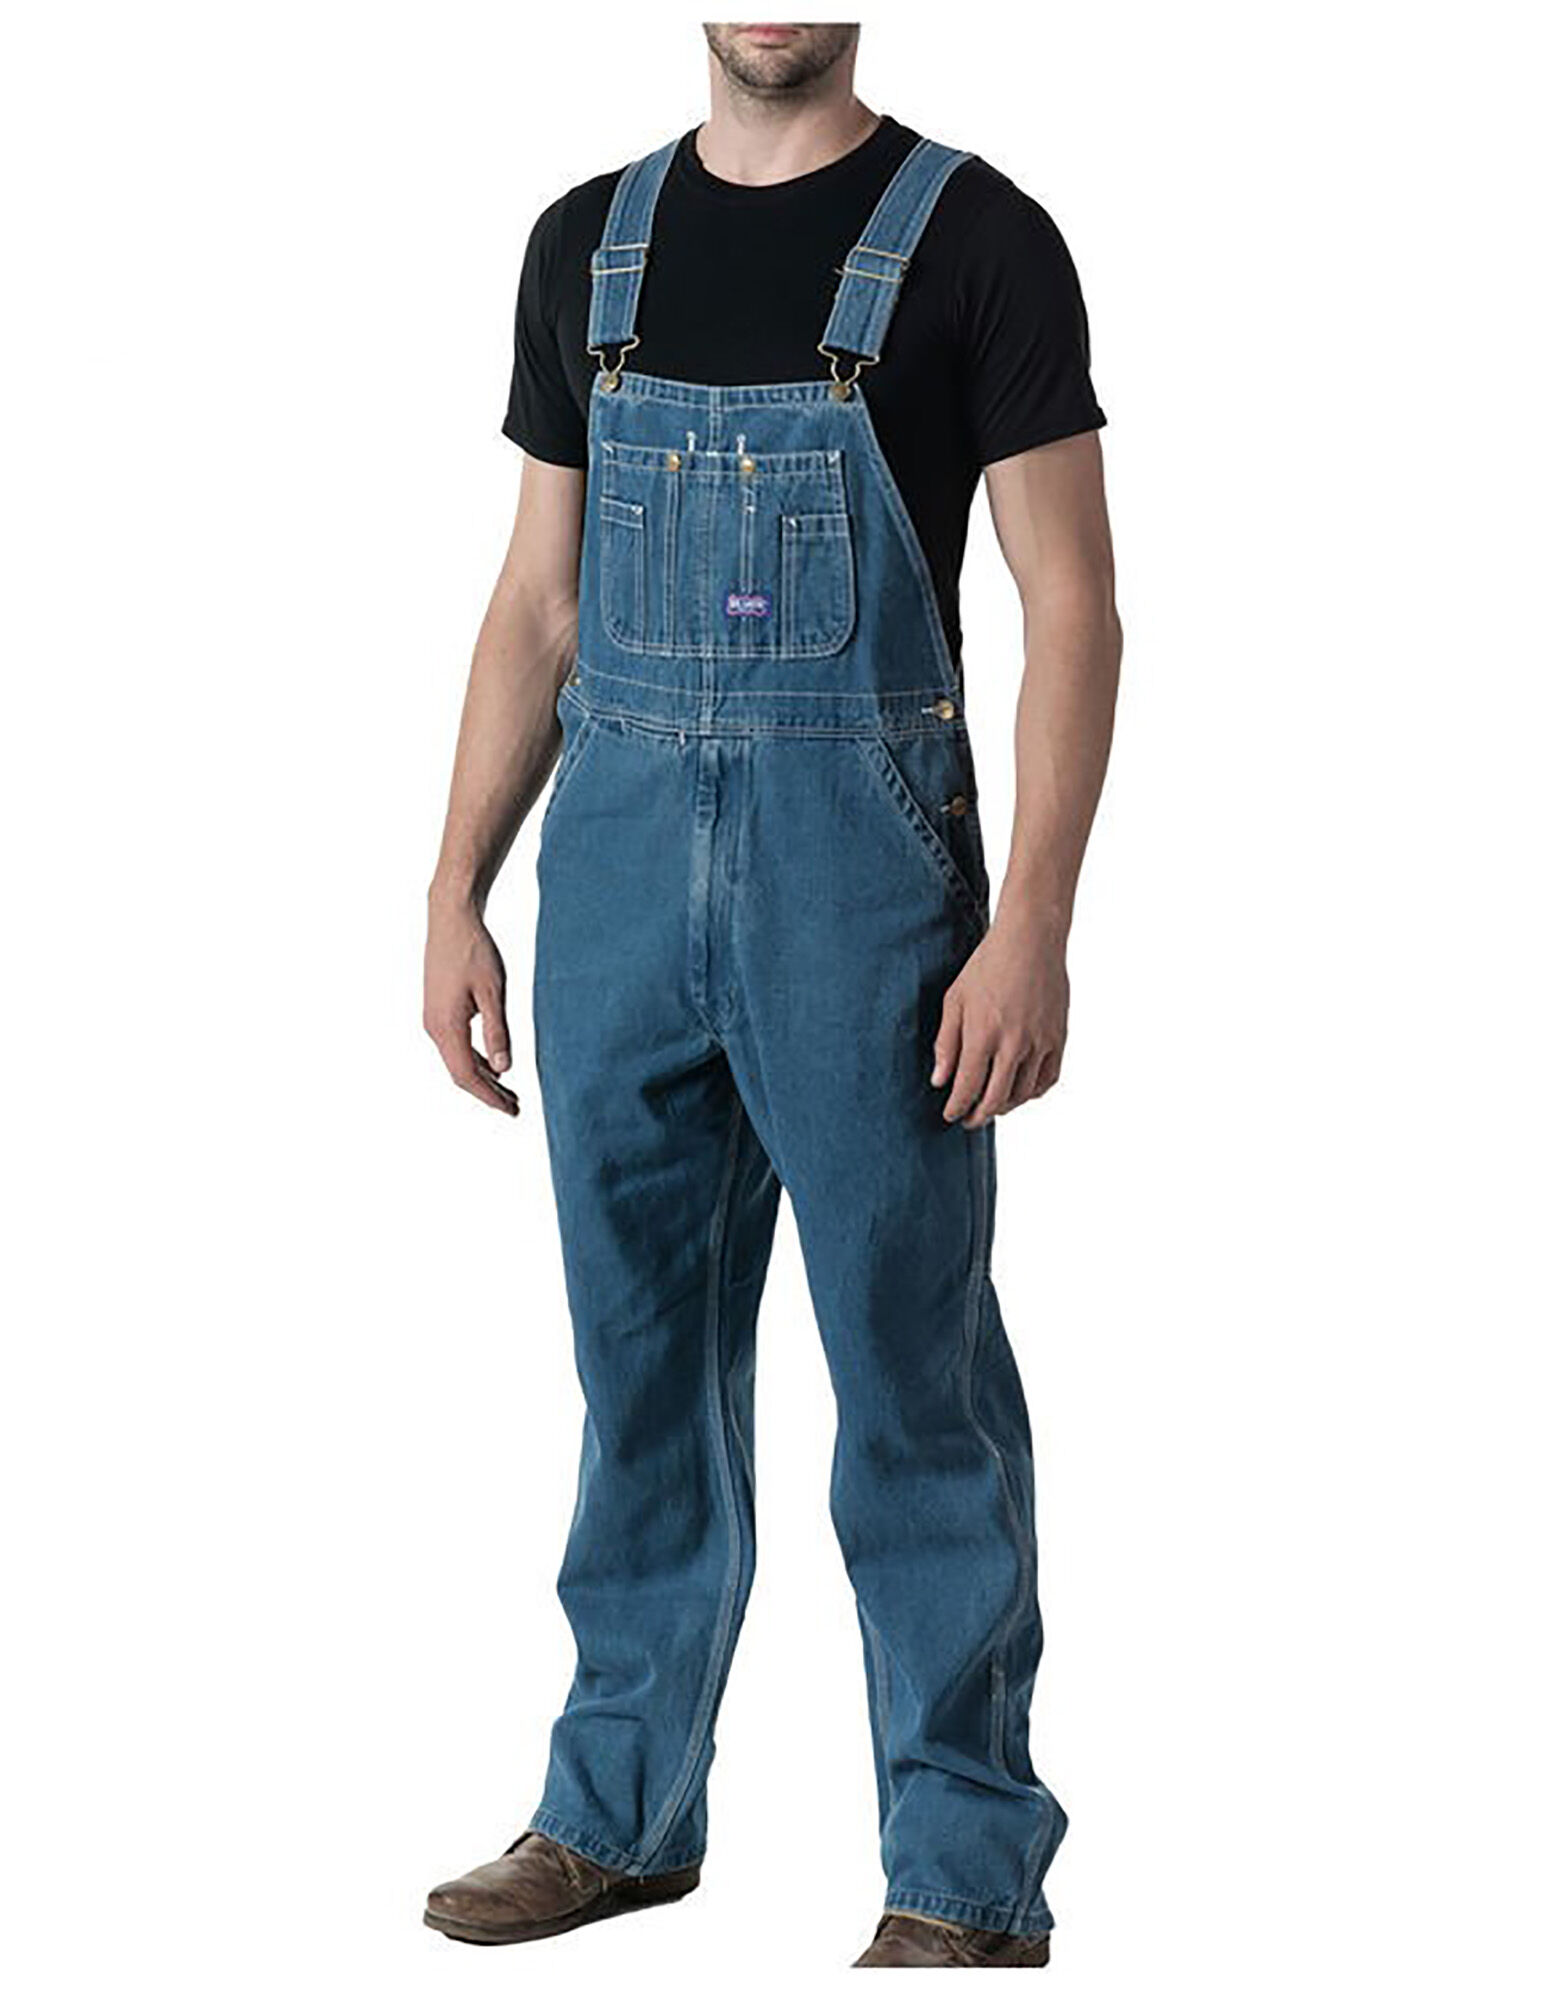 Big Smith Stonewashed Denim Bib Overall Walls